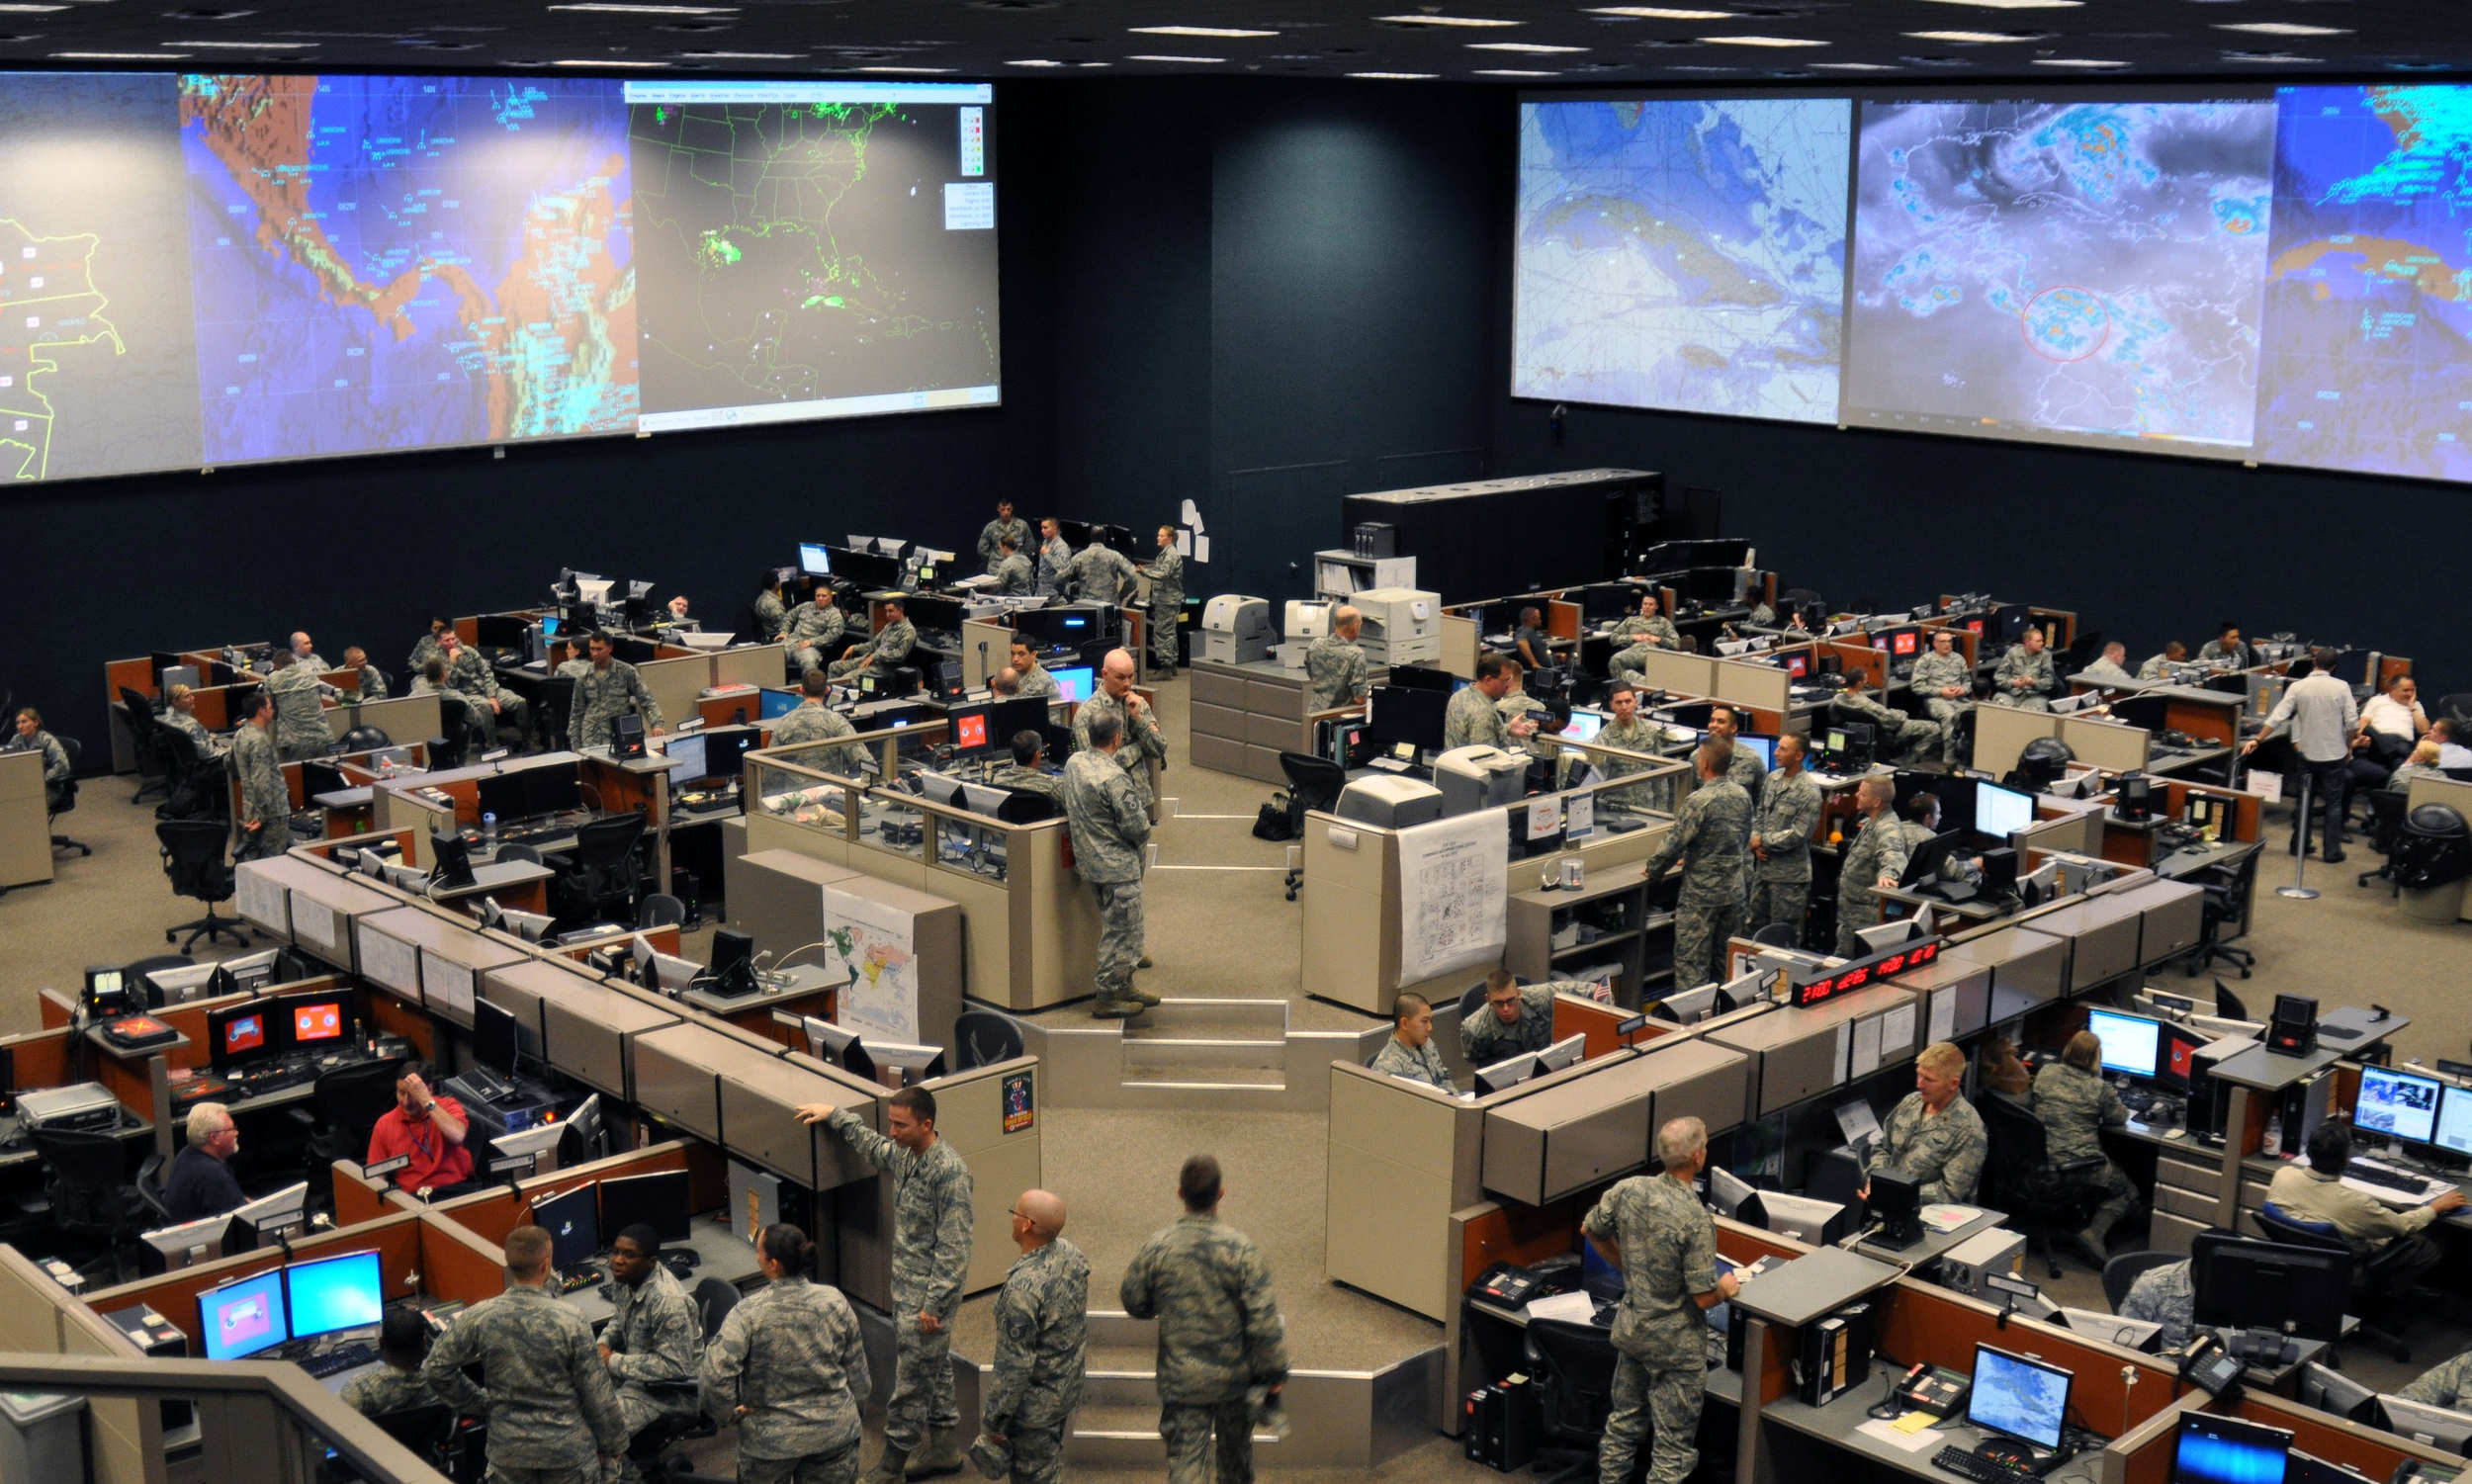 The 612th Air and Space Operations Center provides command and control of air and space power in USSOUTHCOM's area of responsibility, to include 31 countries covering a sixth of the world's land mass. The AOC operates 24-hours-a-day to support joint and coalition efforts in the Caribbean, Central America and South America. ( U.S. Air Force photo by Capt. Justin Brockhoff )